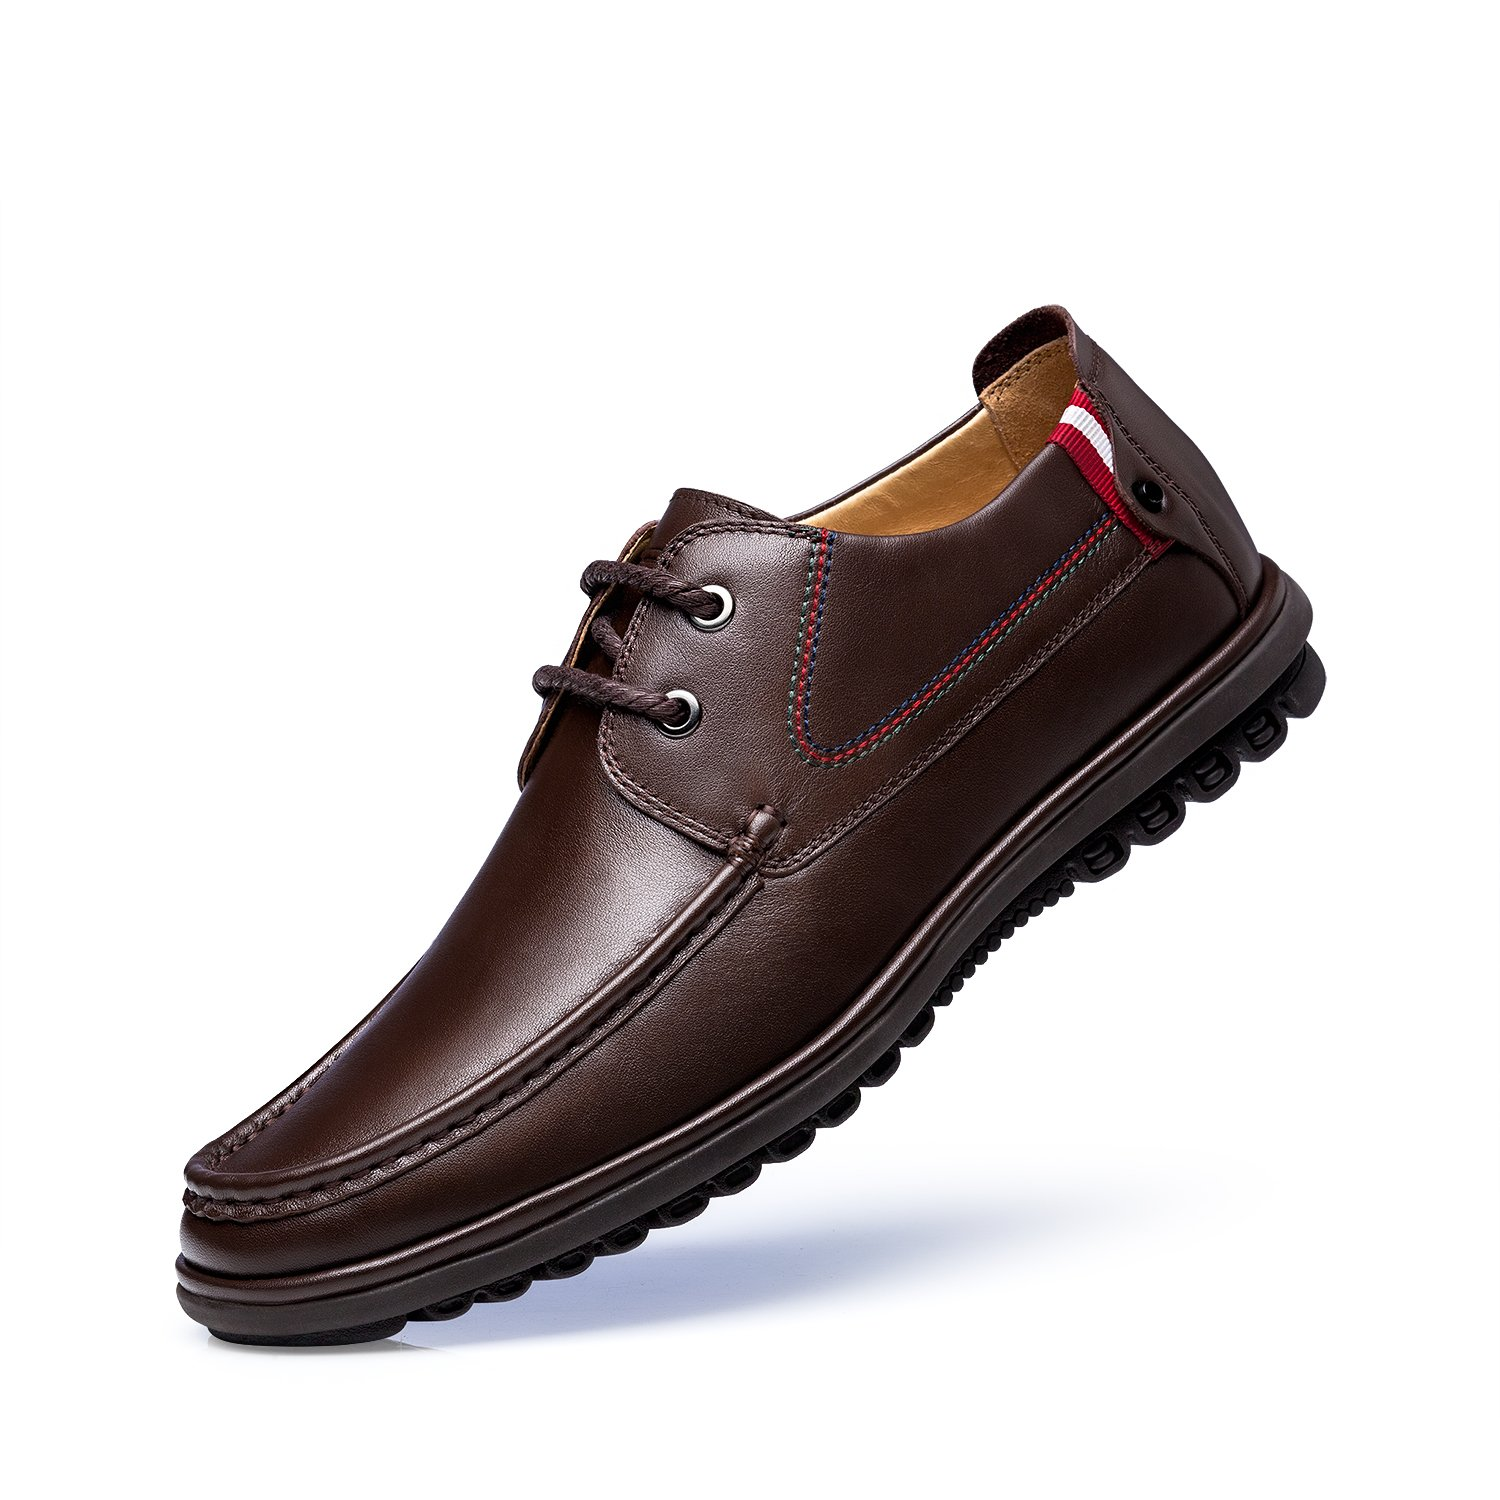 ZRO Men's Lace Up Business Casual Comfortable Shoes Brown US 8.5 by ZRO